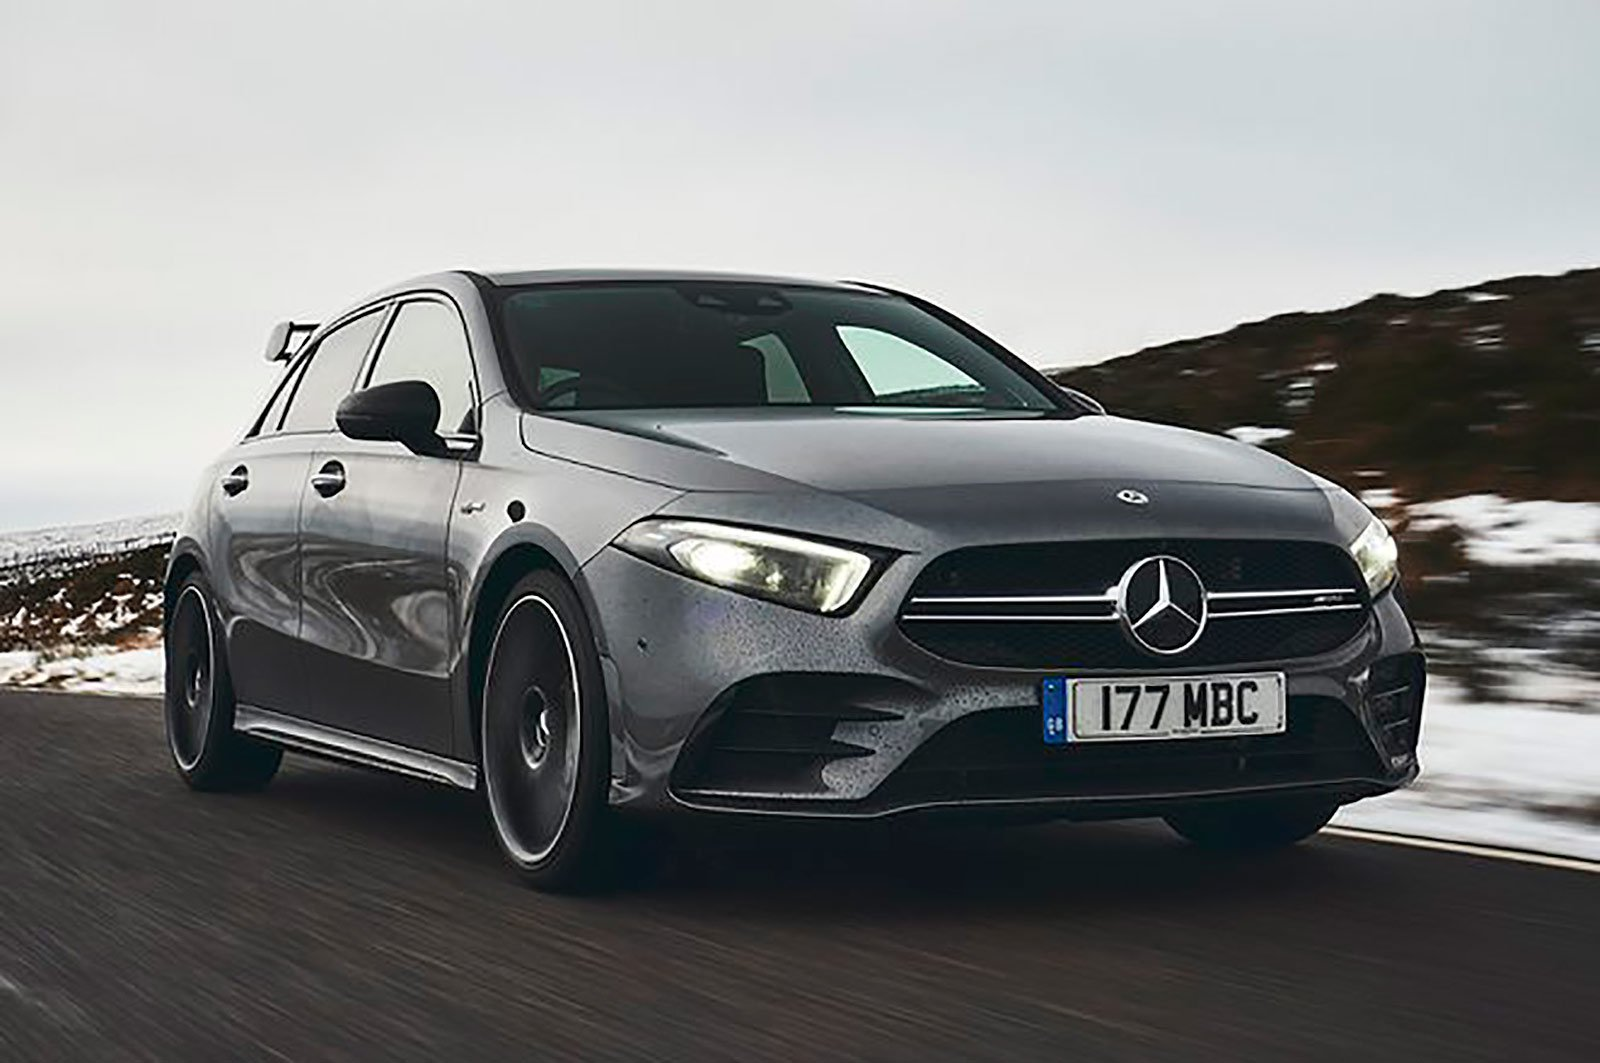 Mercedes A35 AMG front